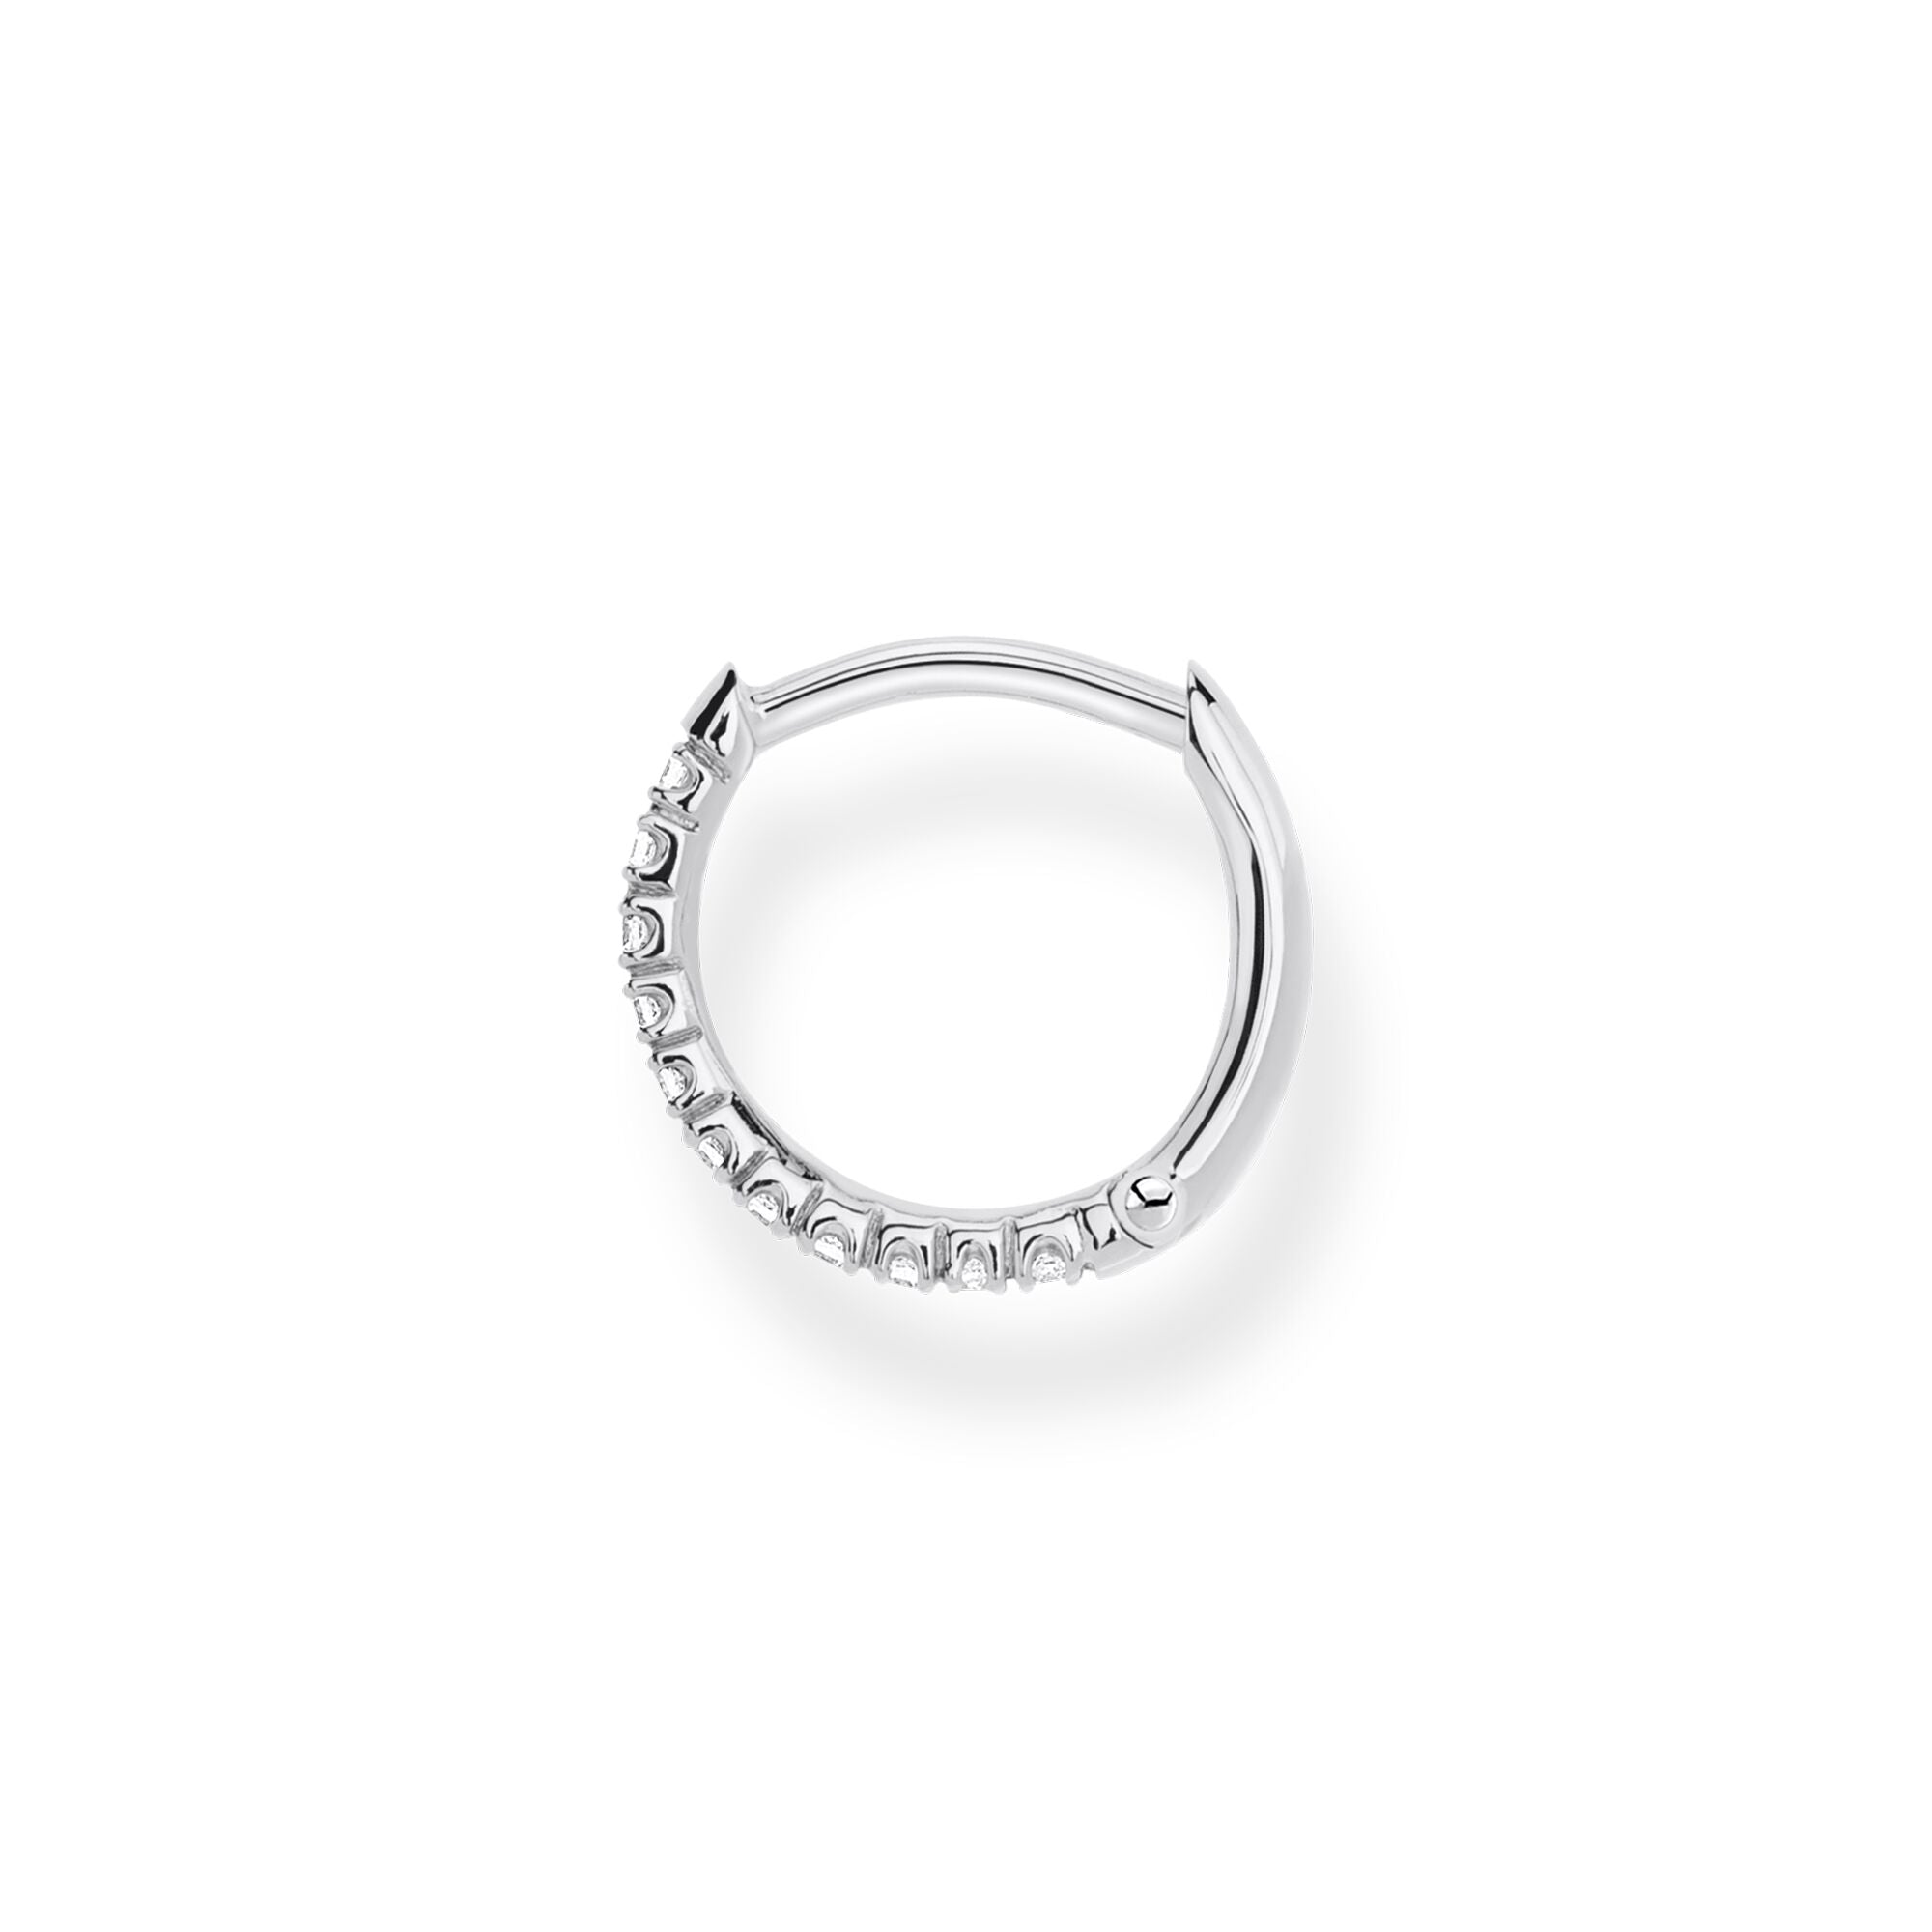 Thomas Sabo, Sterling Silver, Cubic Zirconia, Multi Stone, Hoop, 13.5mm, Single Earring, Ottawa